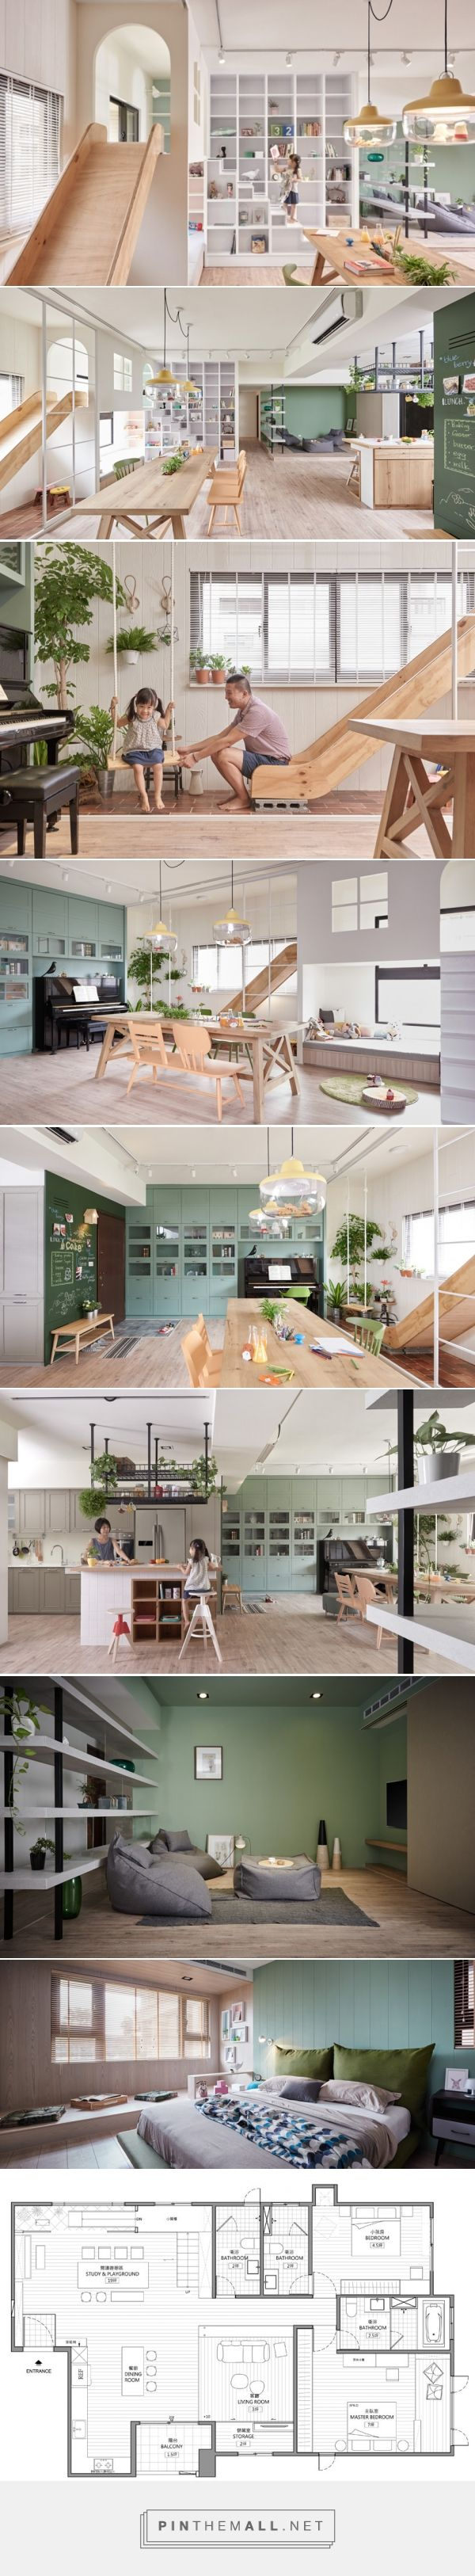 HAO design completes a 'family playground' in taiwan - created via http://pinthemall.net